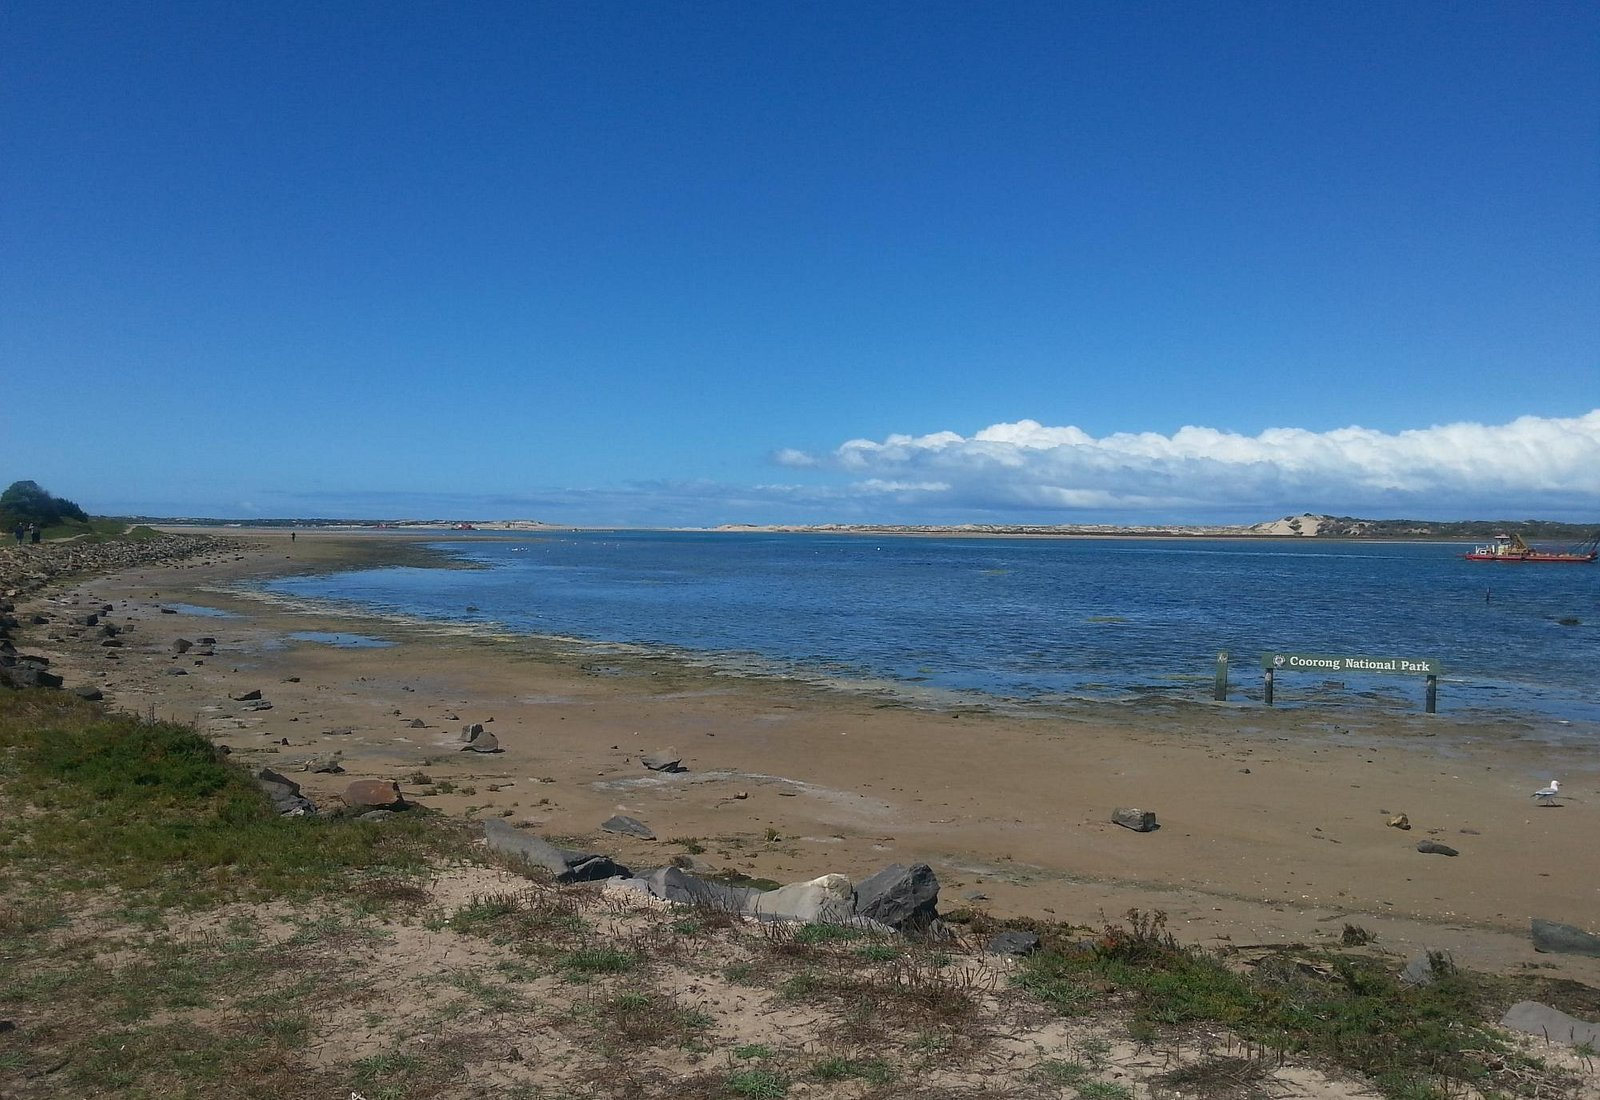 Goolwa Channel to the Murray Mouth. This where the Coorong National Park begins.